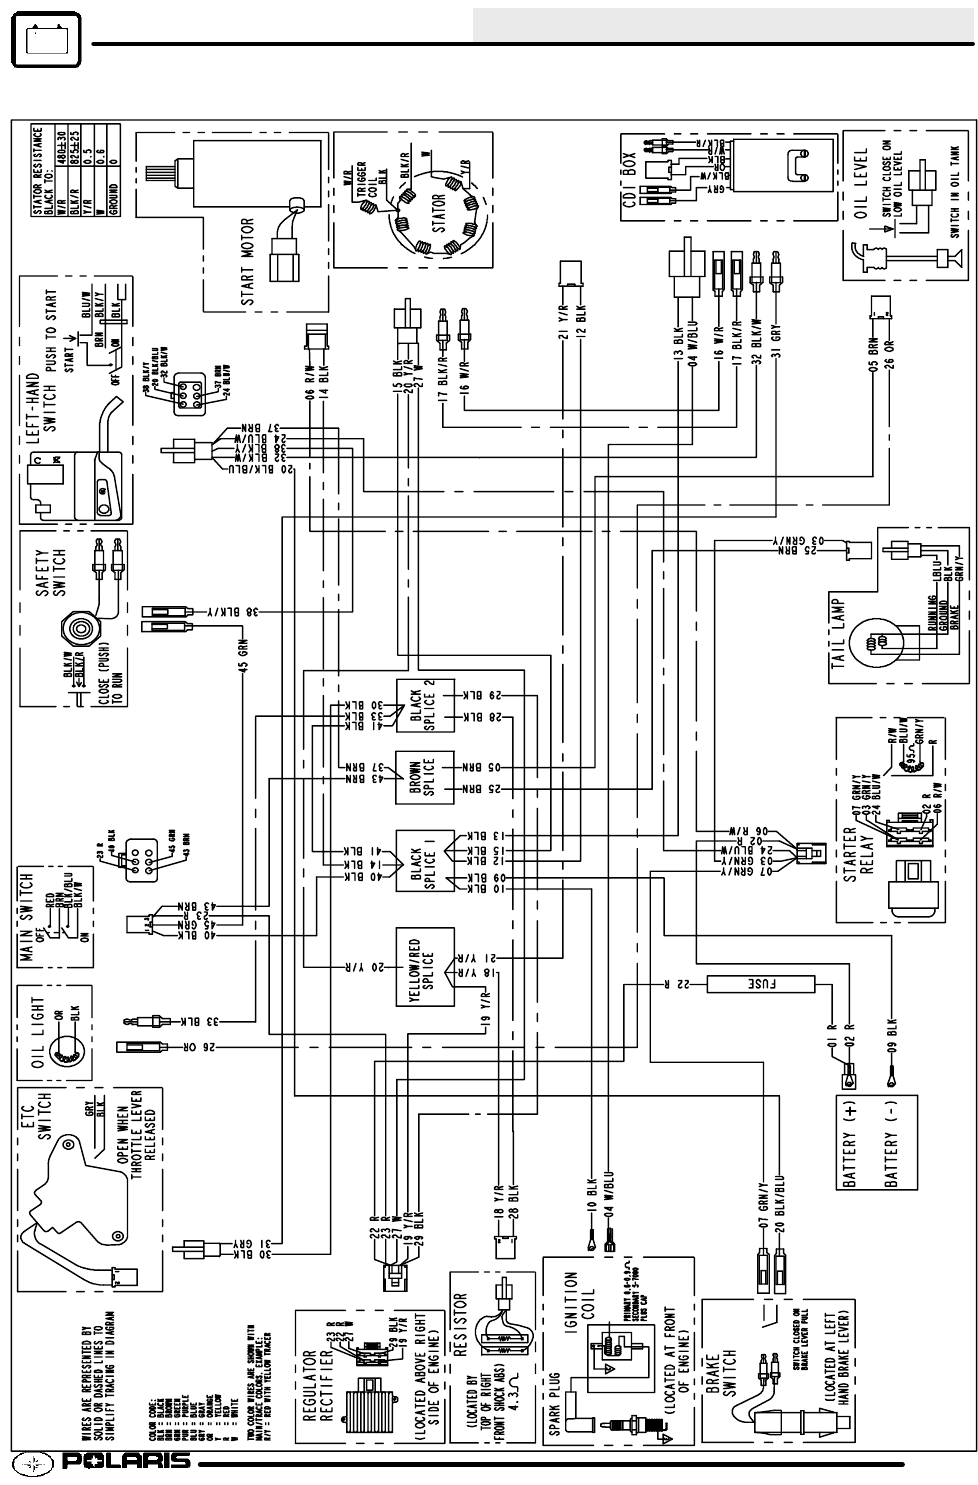 2004 Polaris 90 Wiring Diagram - Buick Century Radio Wiring for Wiring  Diagram SchematicsWiring Diagram Schematics